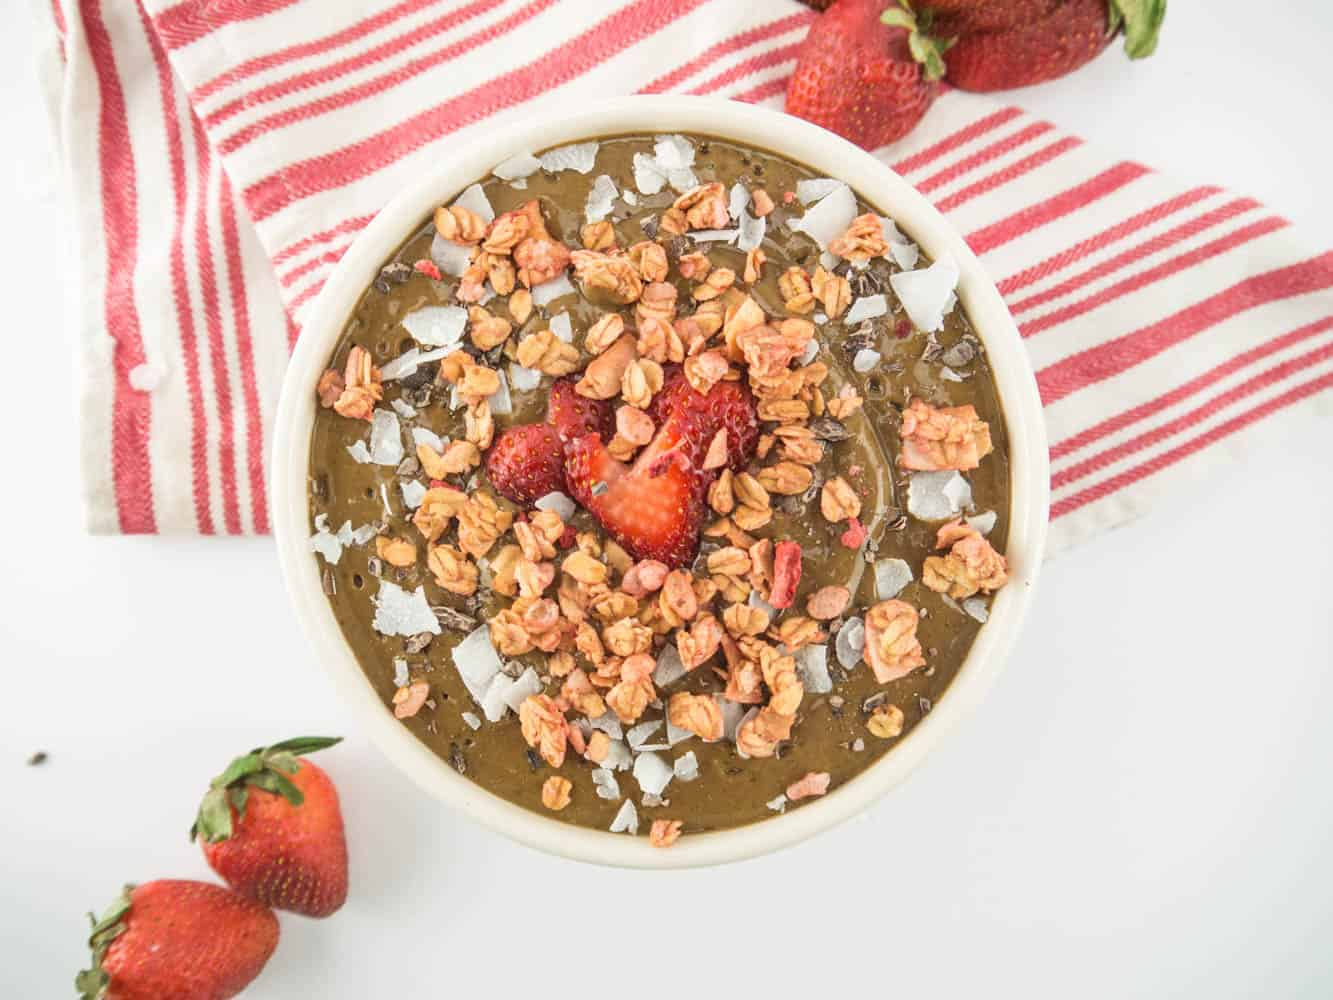 Chocolate-Covered Strawberry Smoothie Bowl